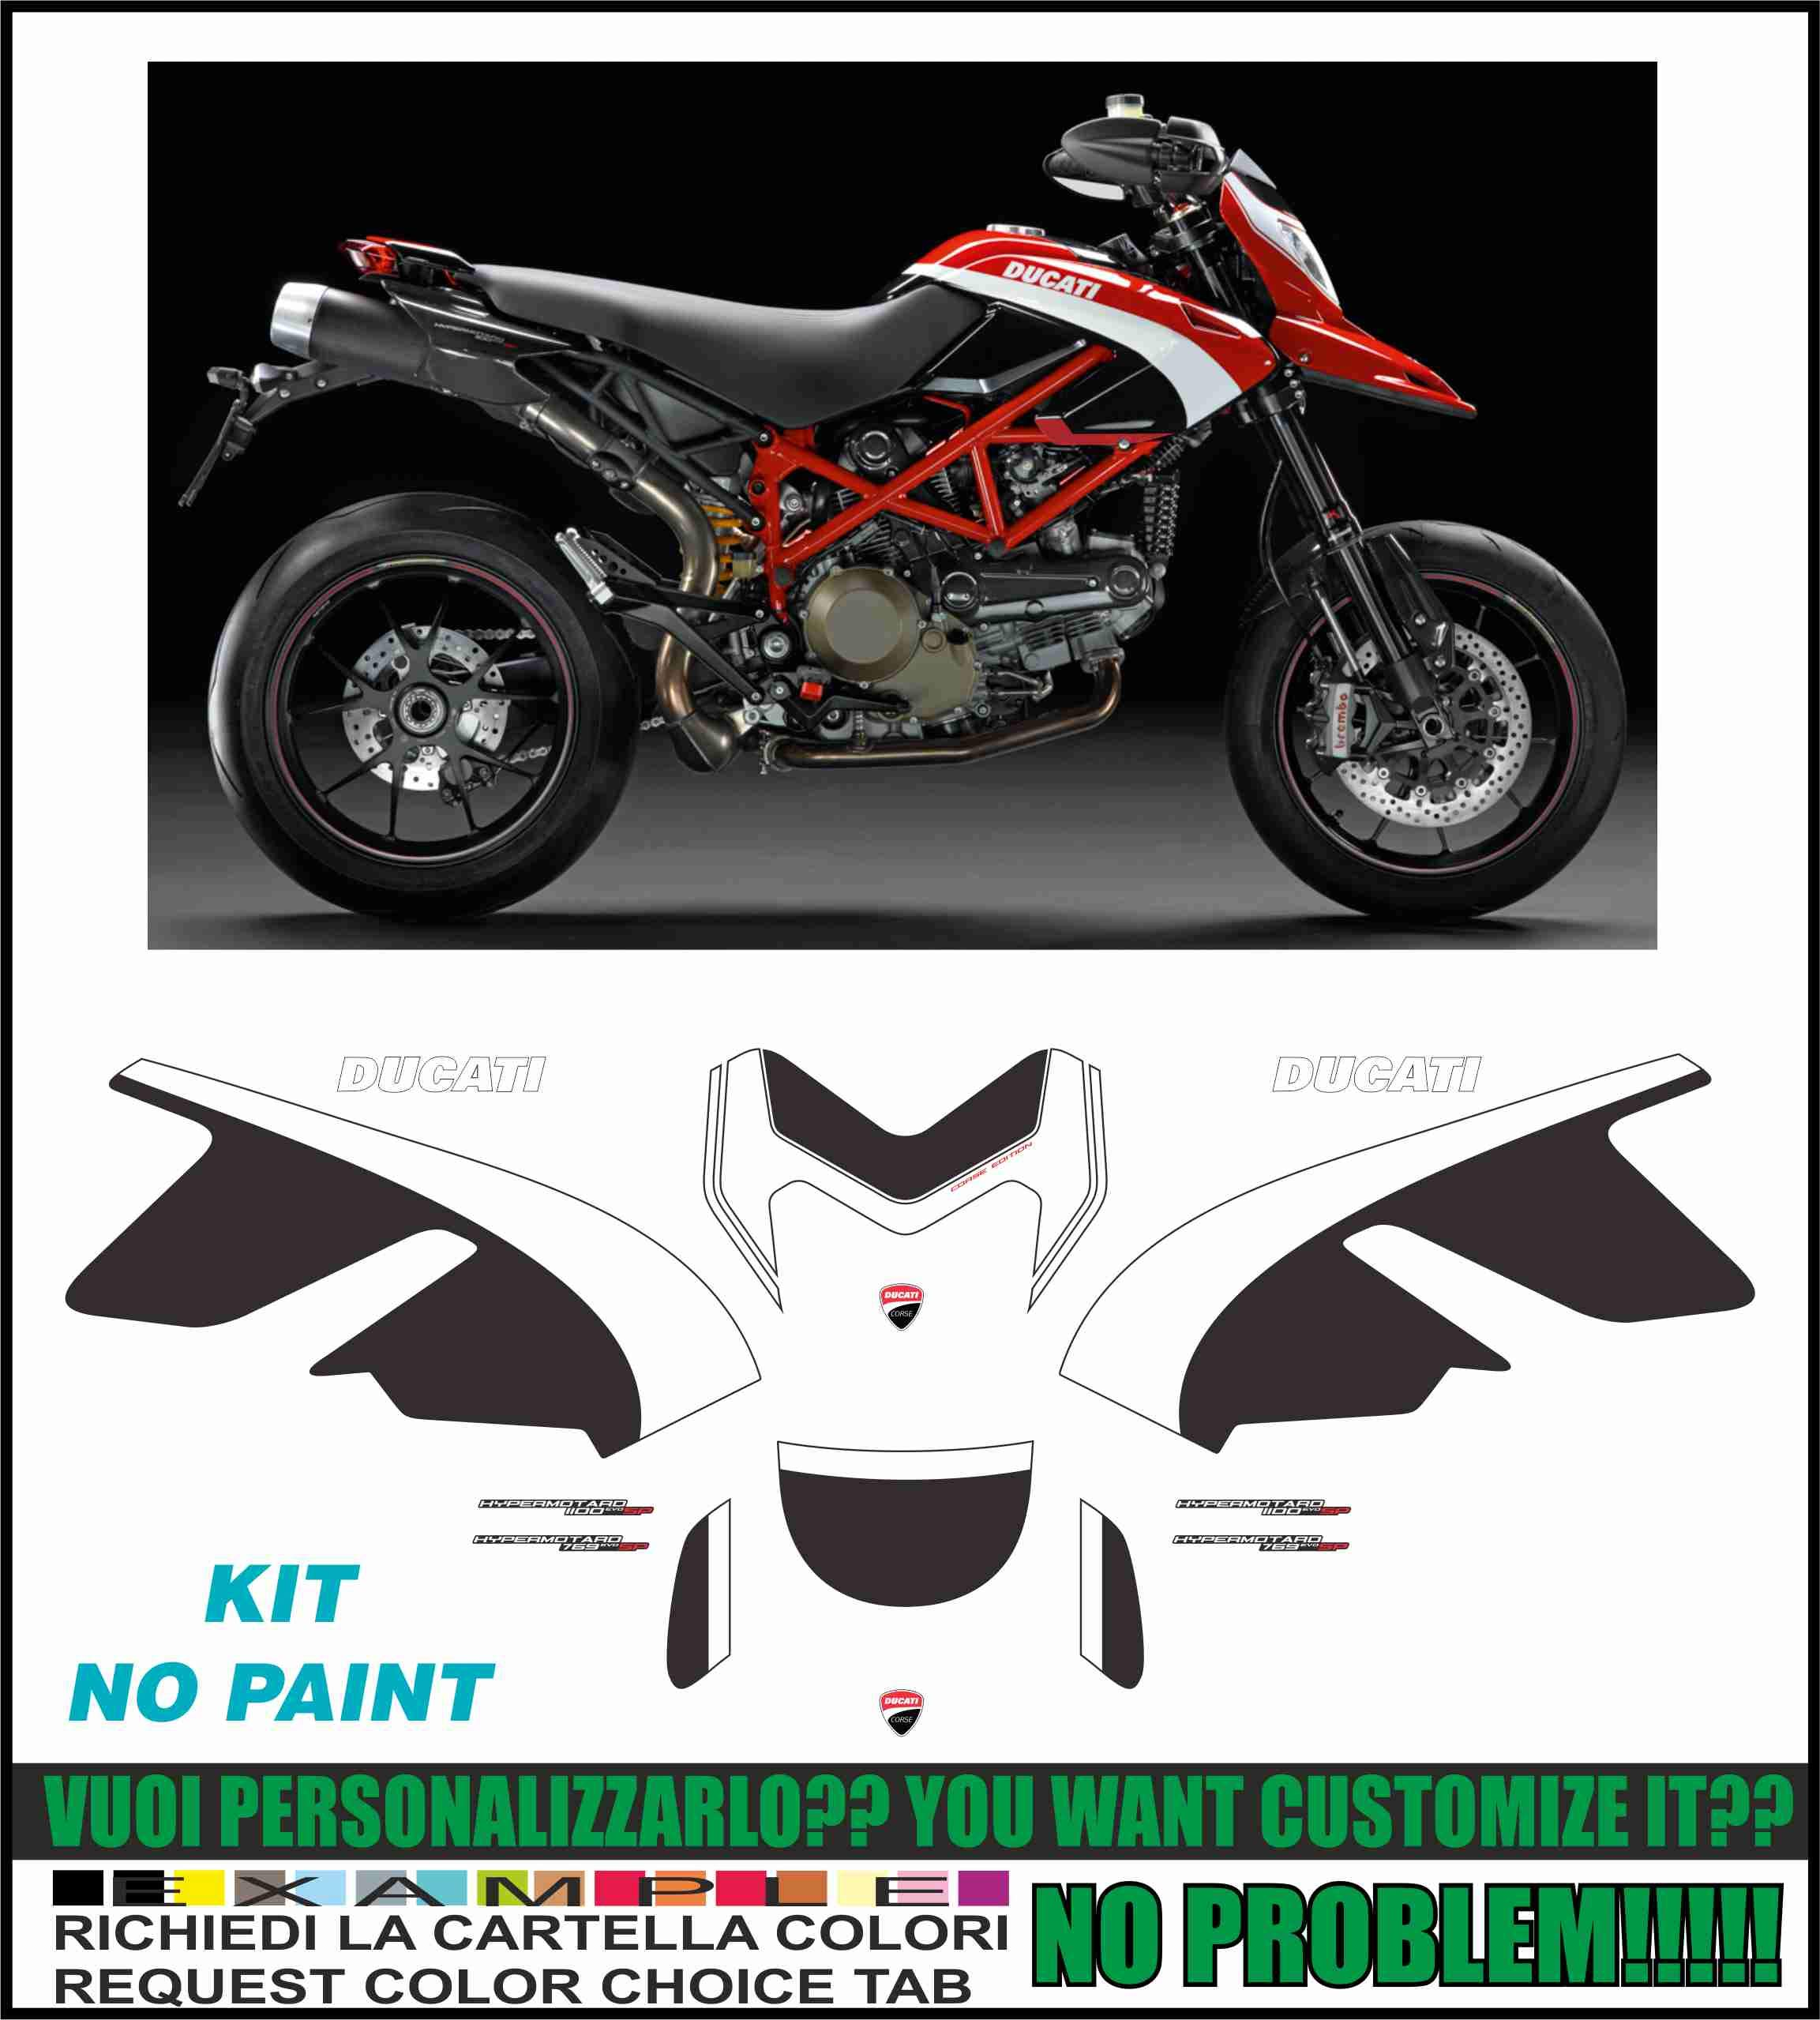 Kit adesivi Decal stikers Ducati Hypermotard 796 1100 EVO SP Corse NO Paint: Amazon.es: Coche y moto